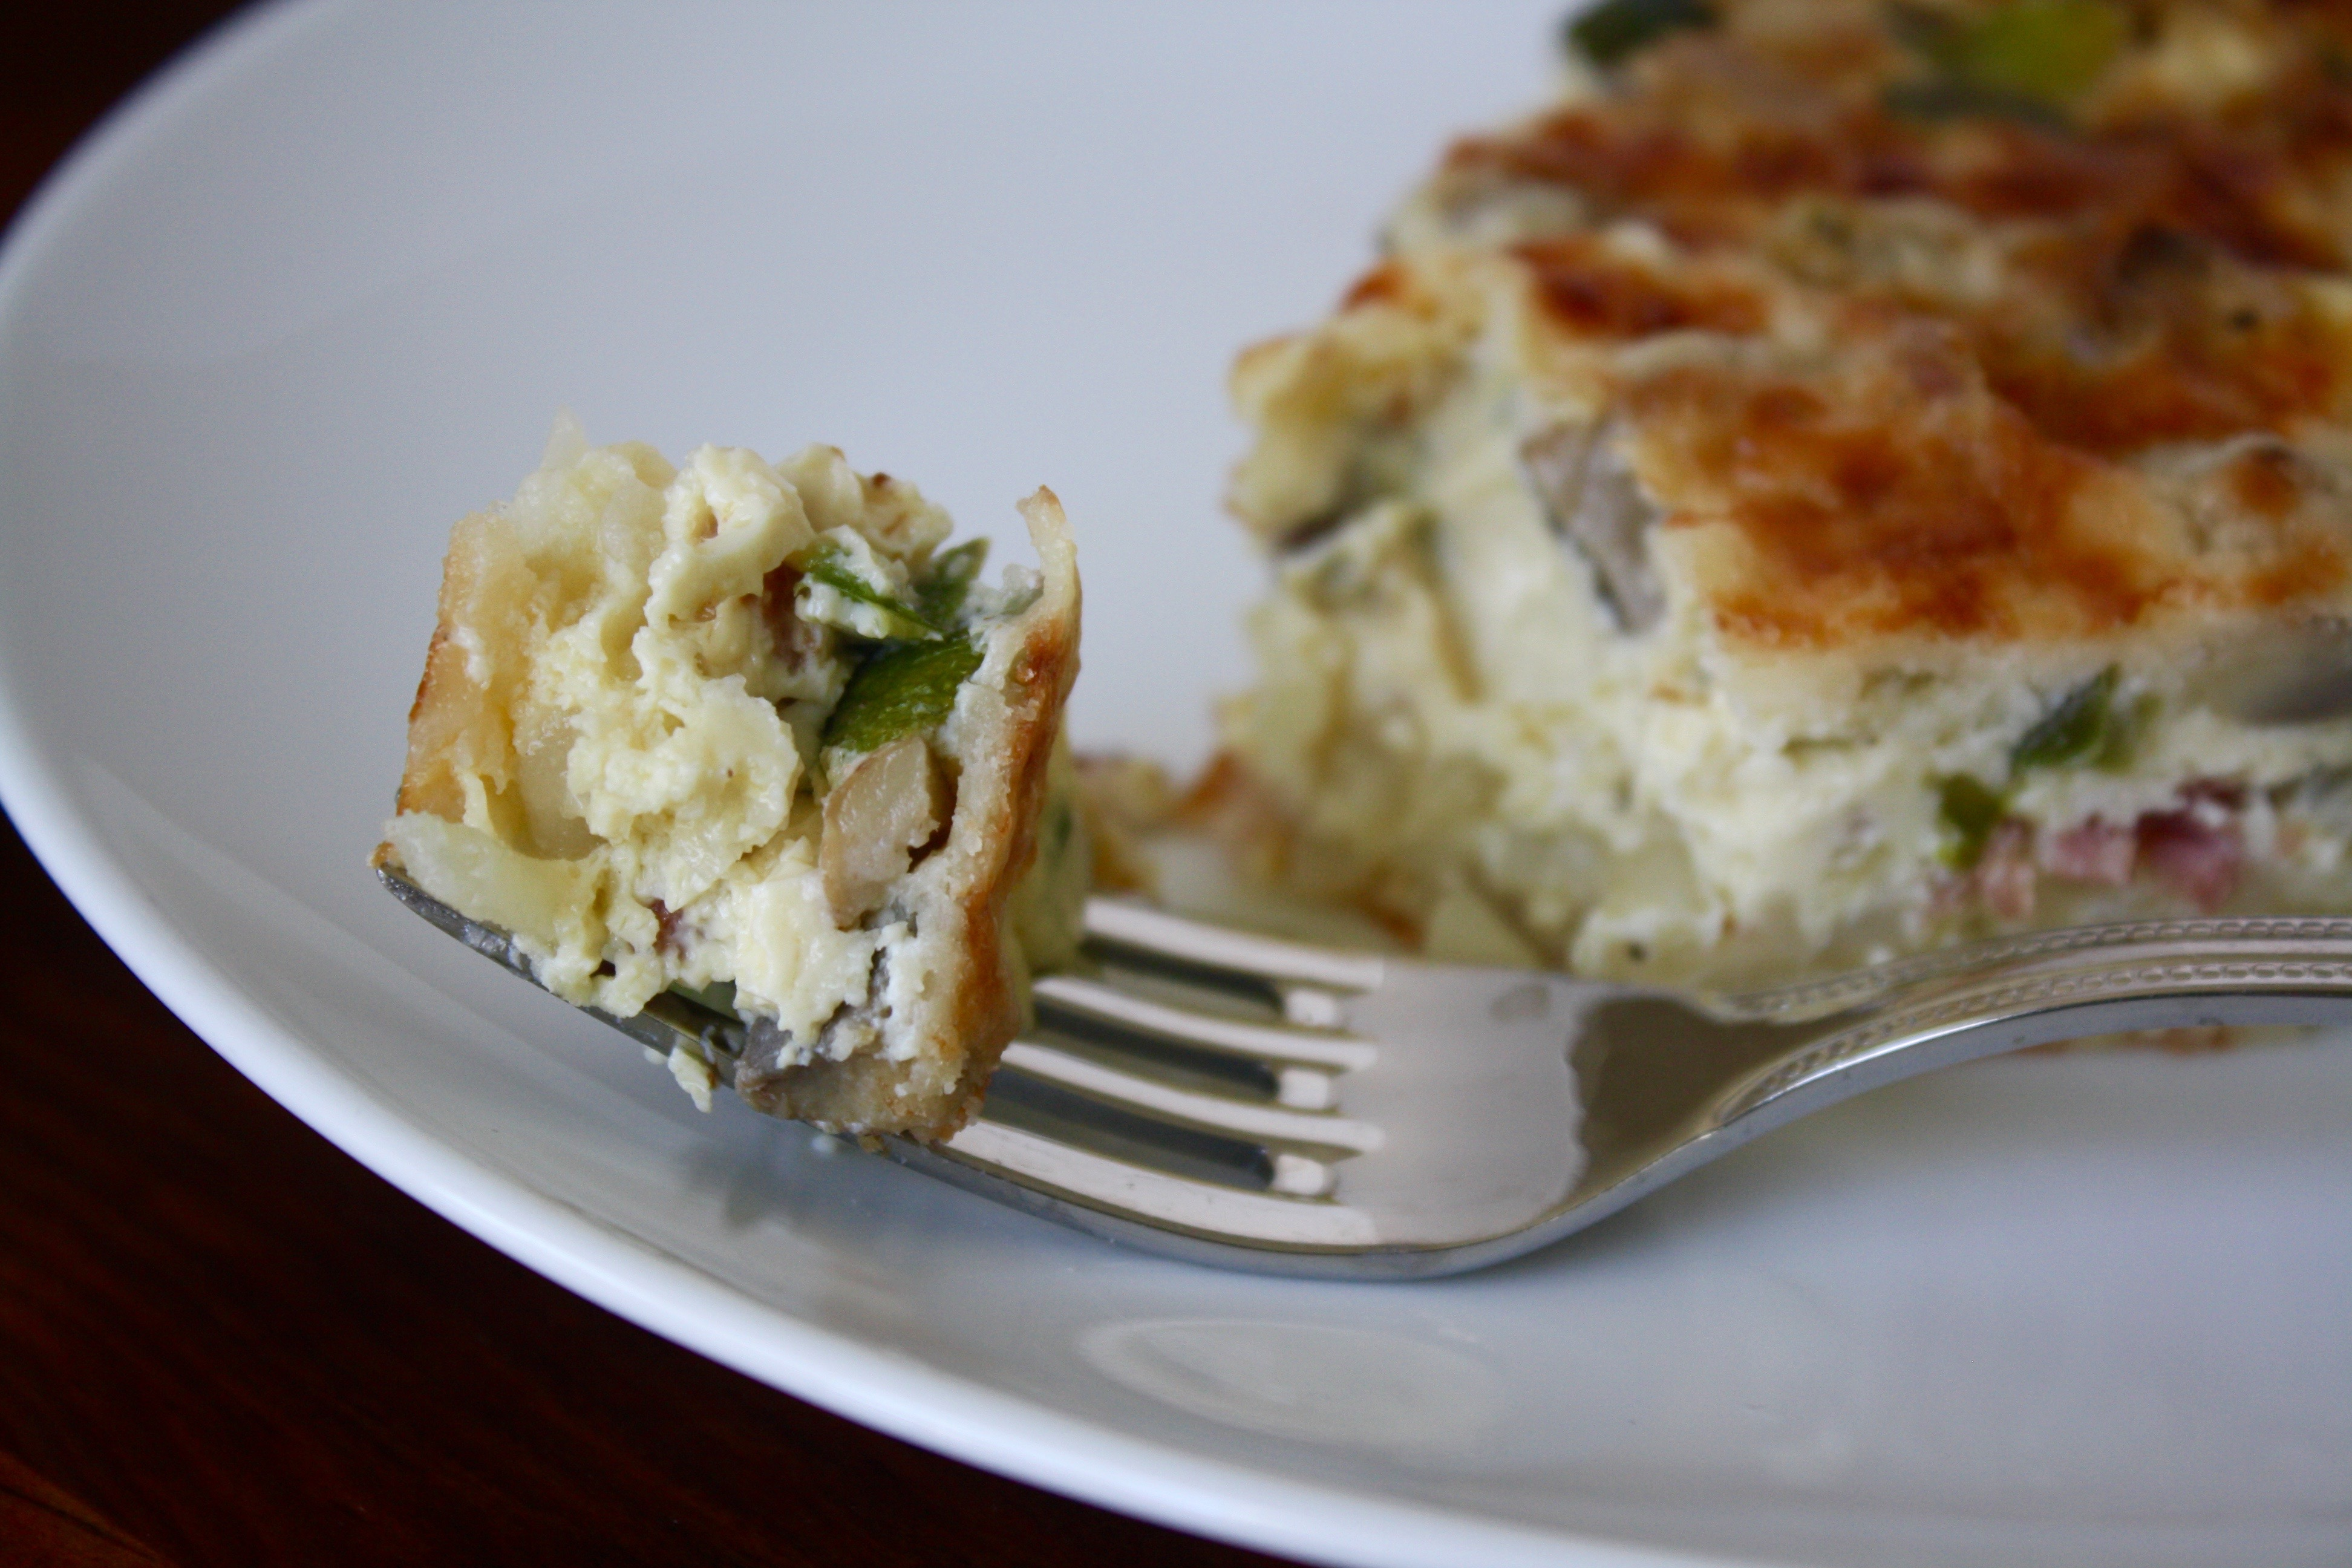 Turkey Bacon Quiche with Hashbrown Crust